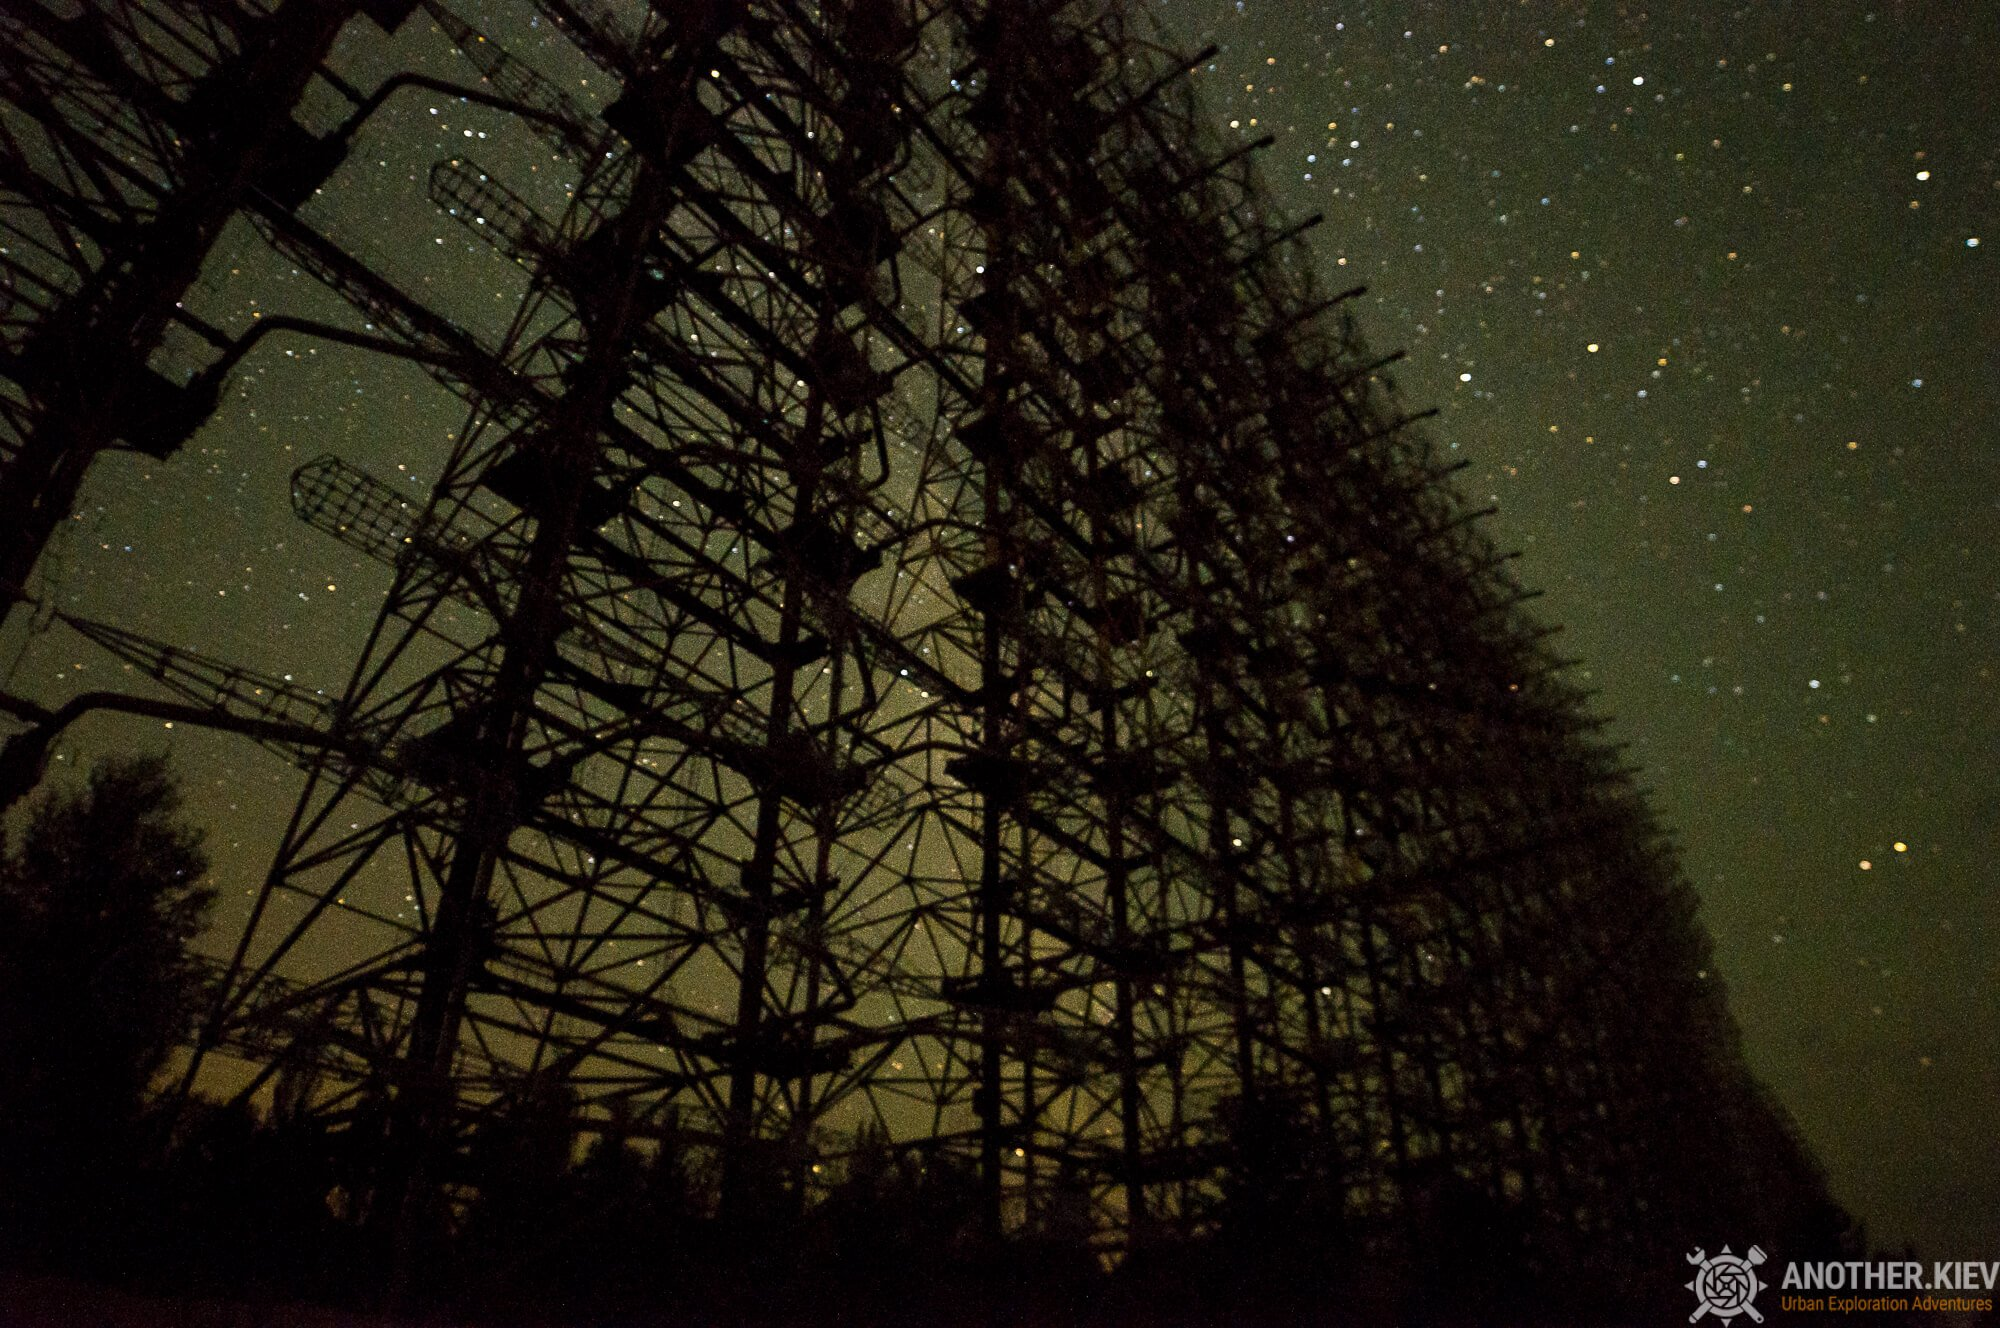 radar station duga-3 under millions of stars